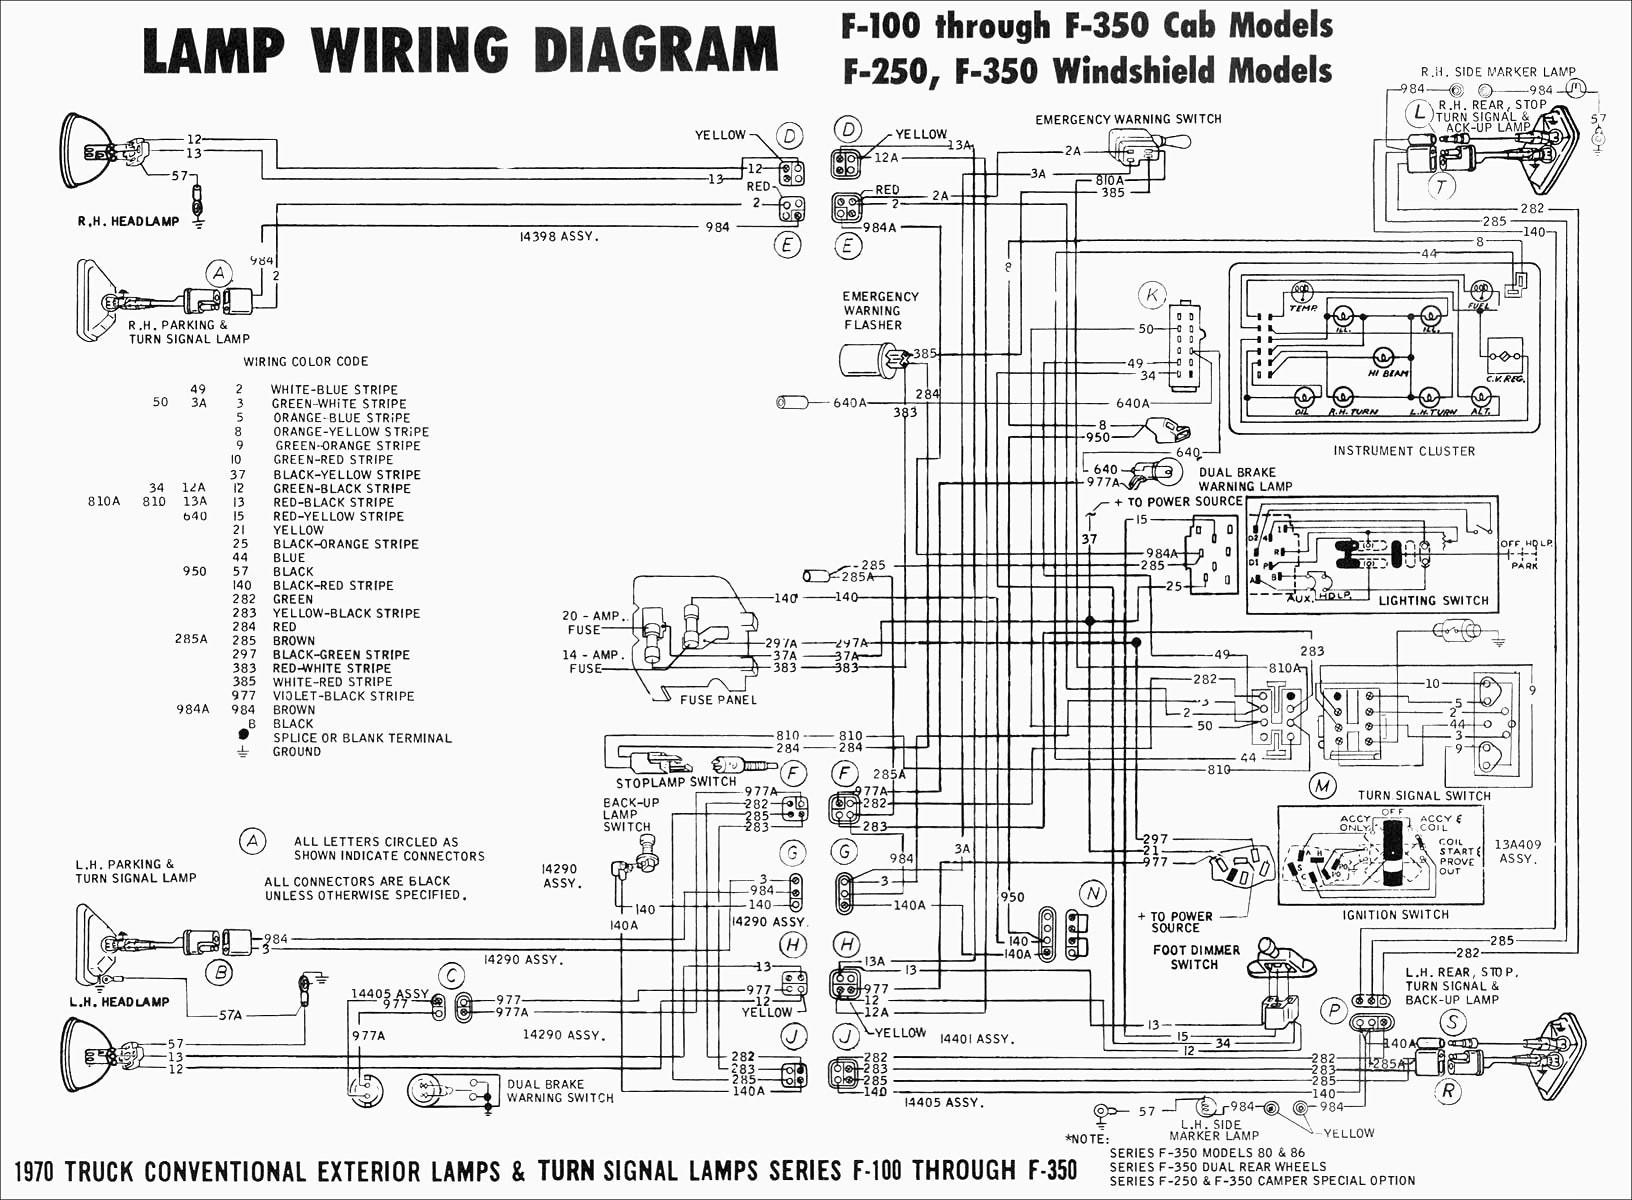 mtd ignition switch wiring diagram Download-Wiring Diagram for Mtd Ignition Switch Fresh Wiring Diagram Amplifier Archives Joescablecar Fresh Wiring 13-n